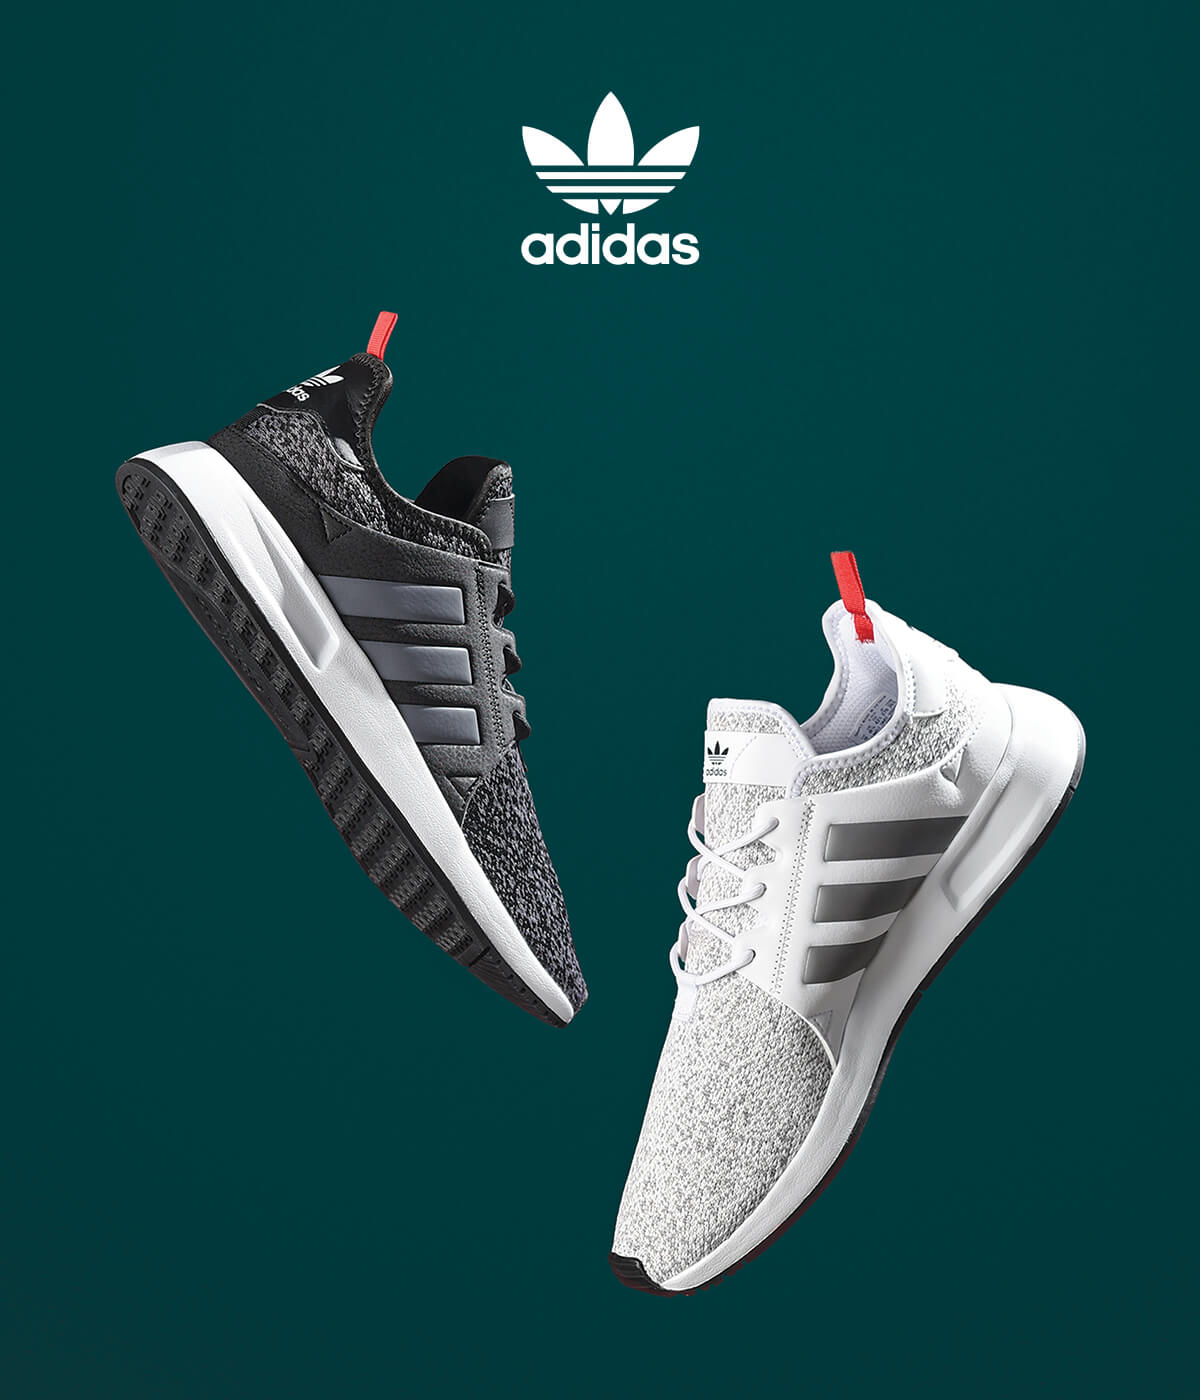 ADIDAS RUNNERS, SKATE SHOES & MORE - SHOP ADIDAS FOOTWEAR NOW